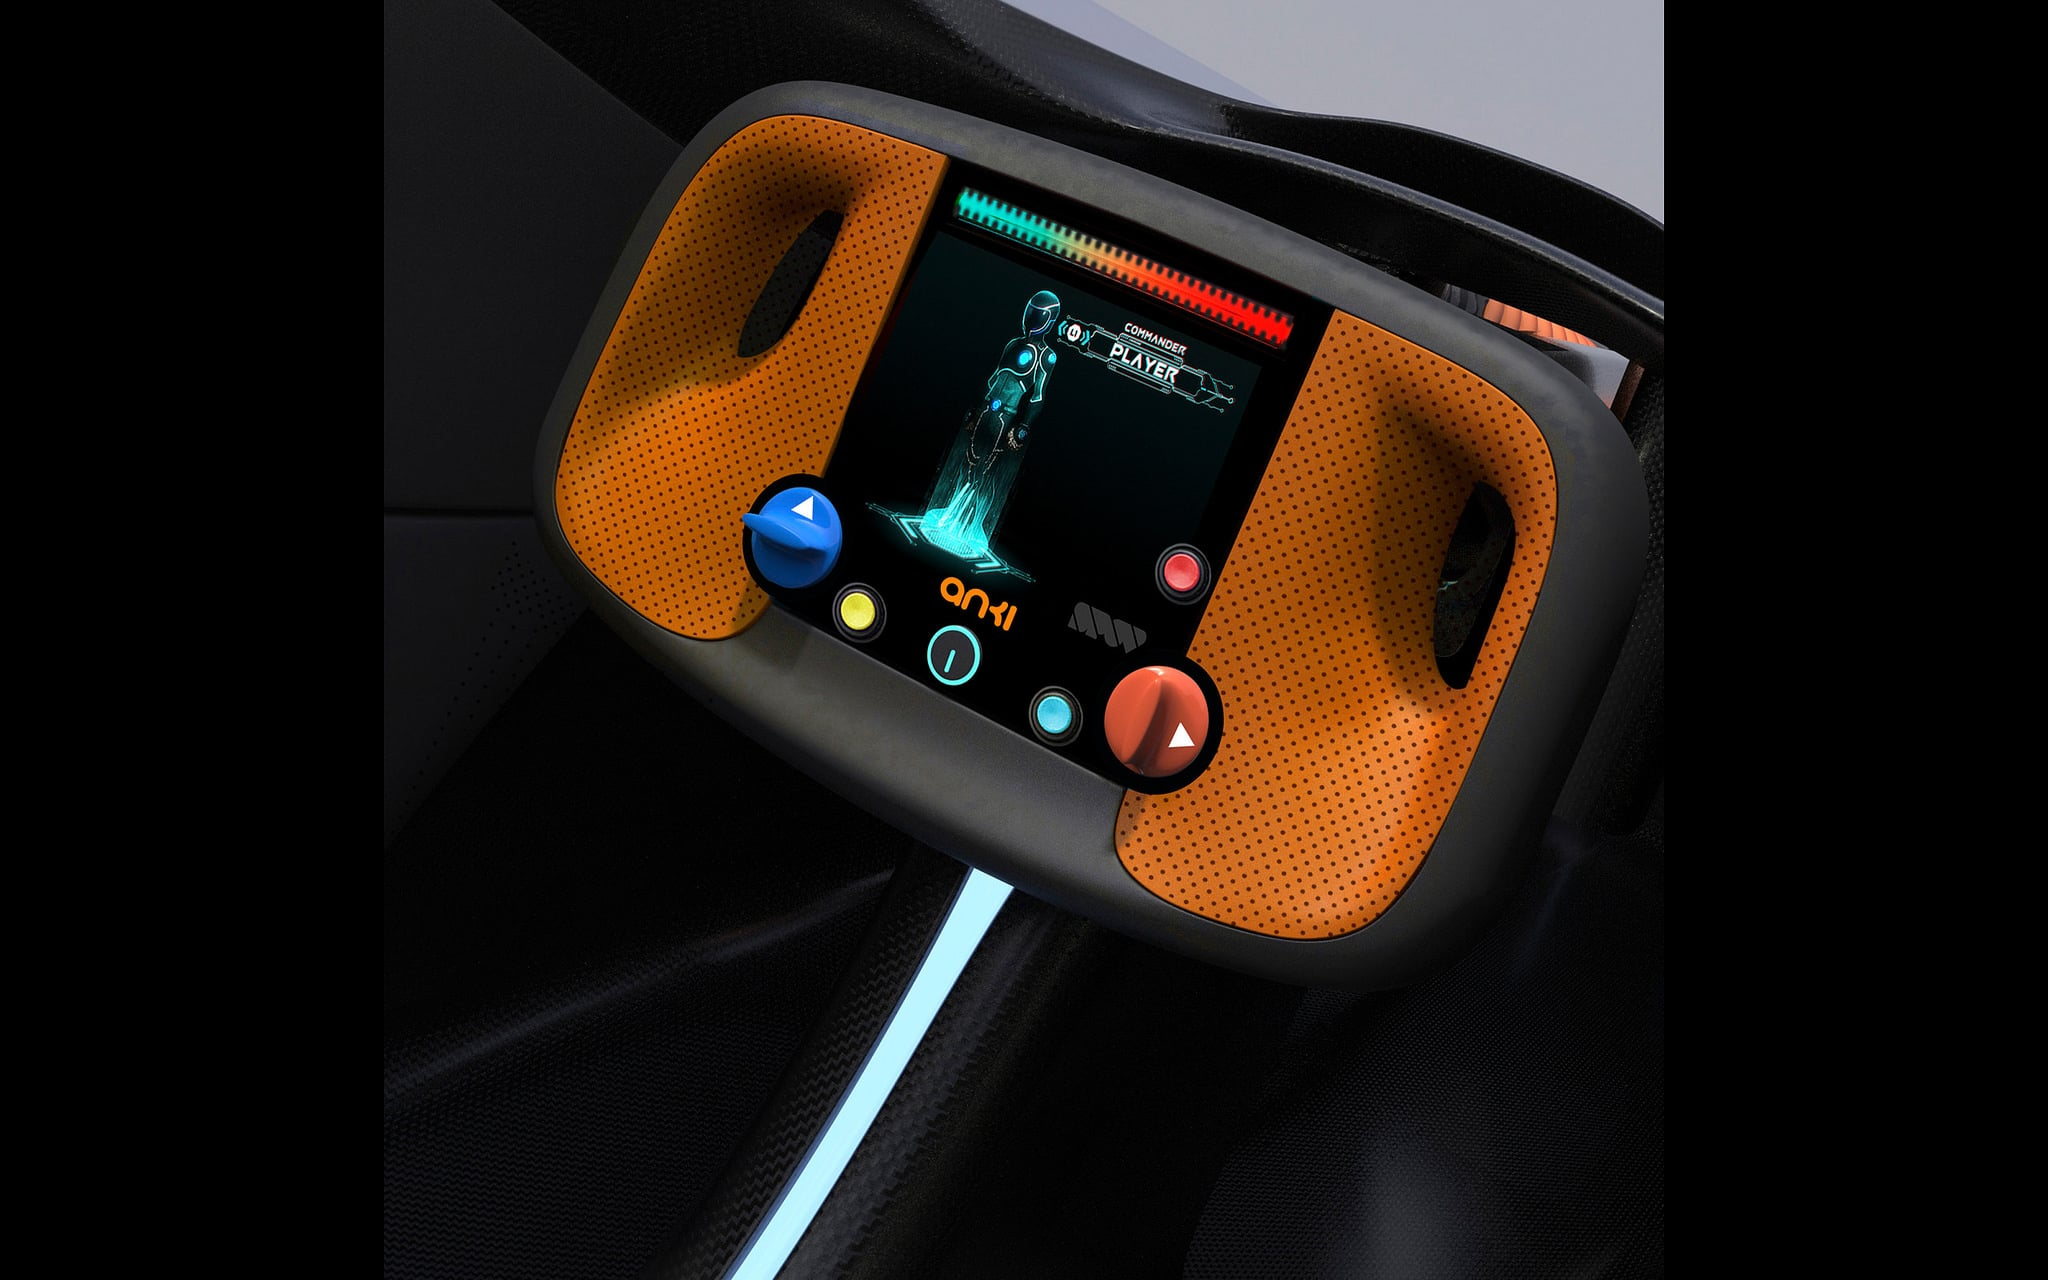 2016 Anki RS interior HD wallpapers